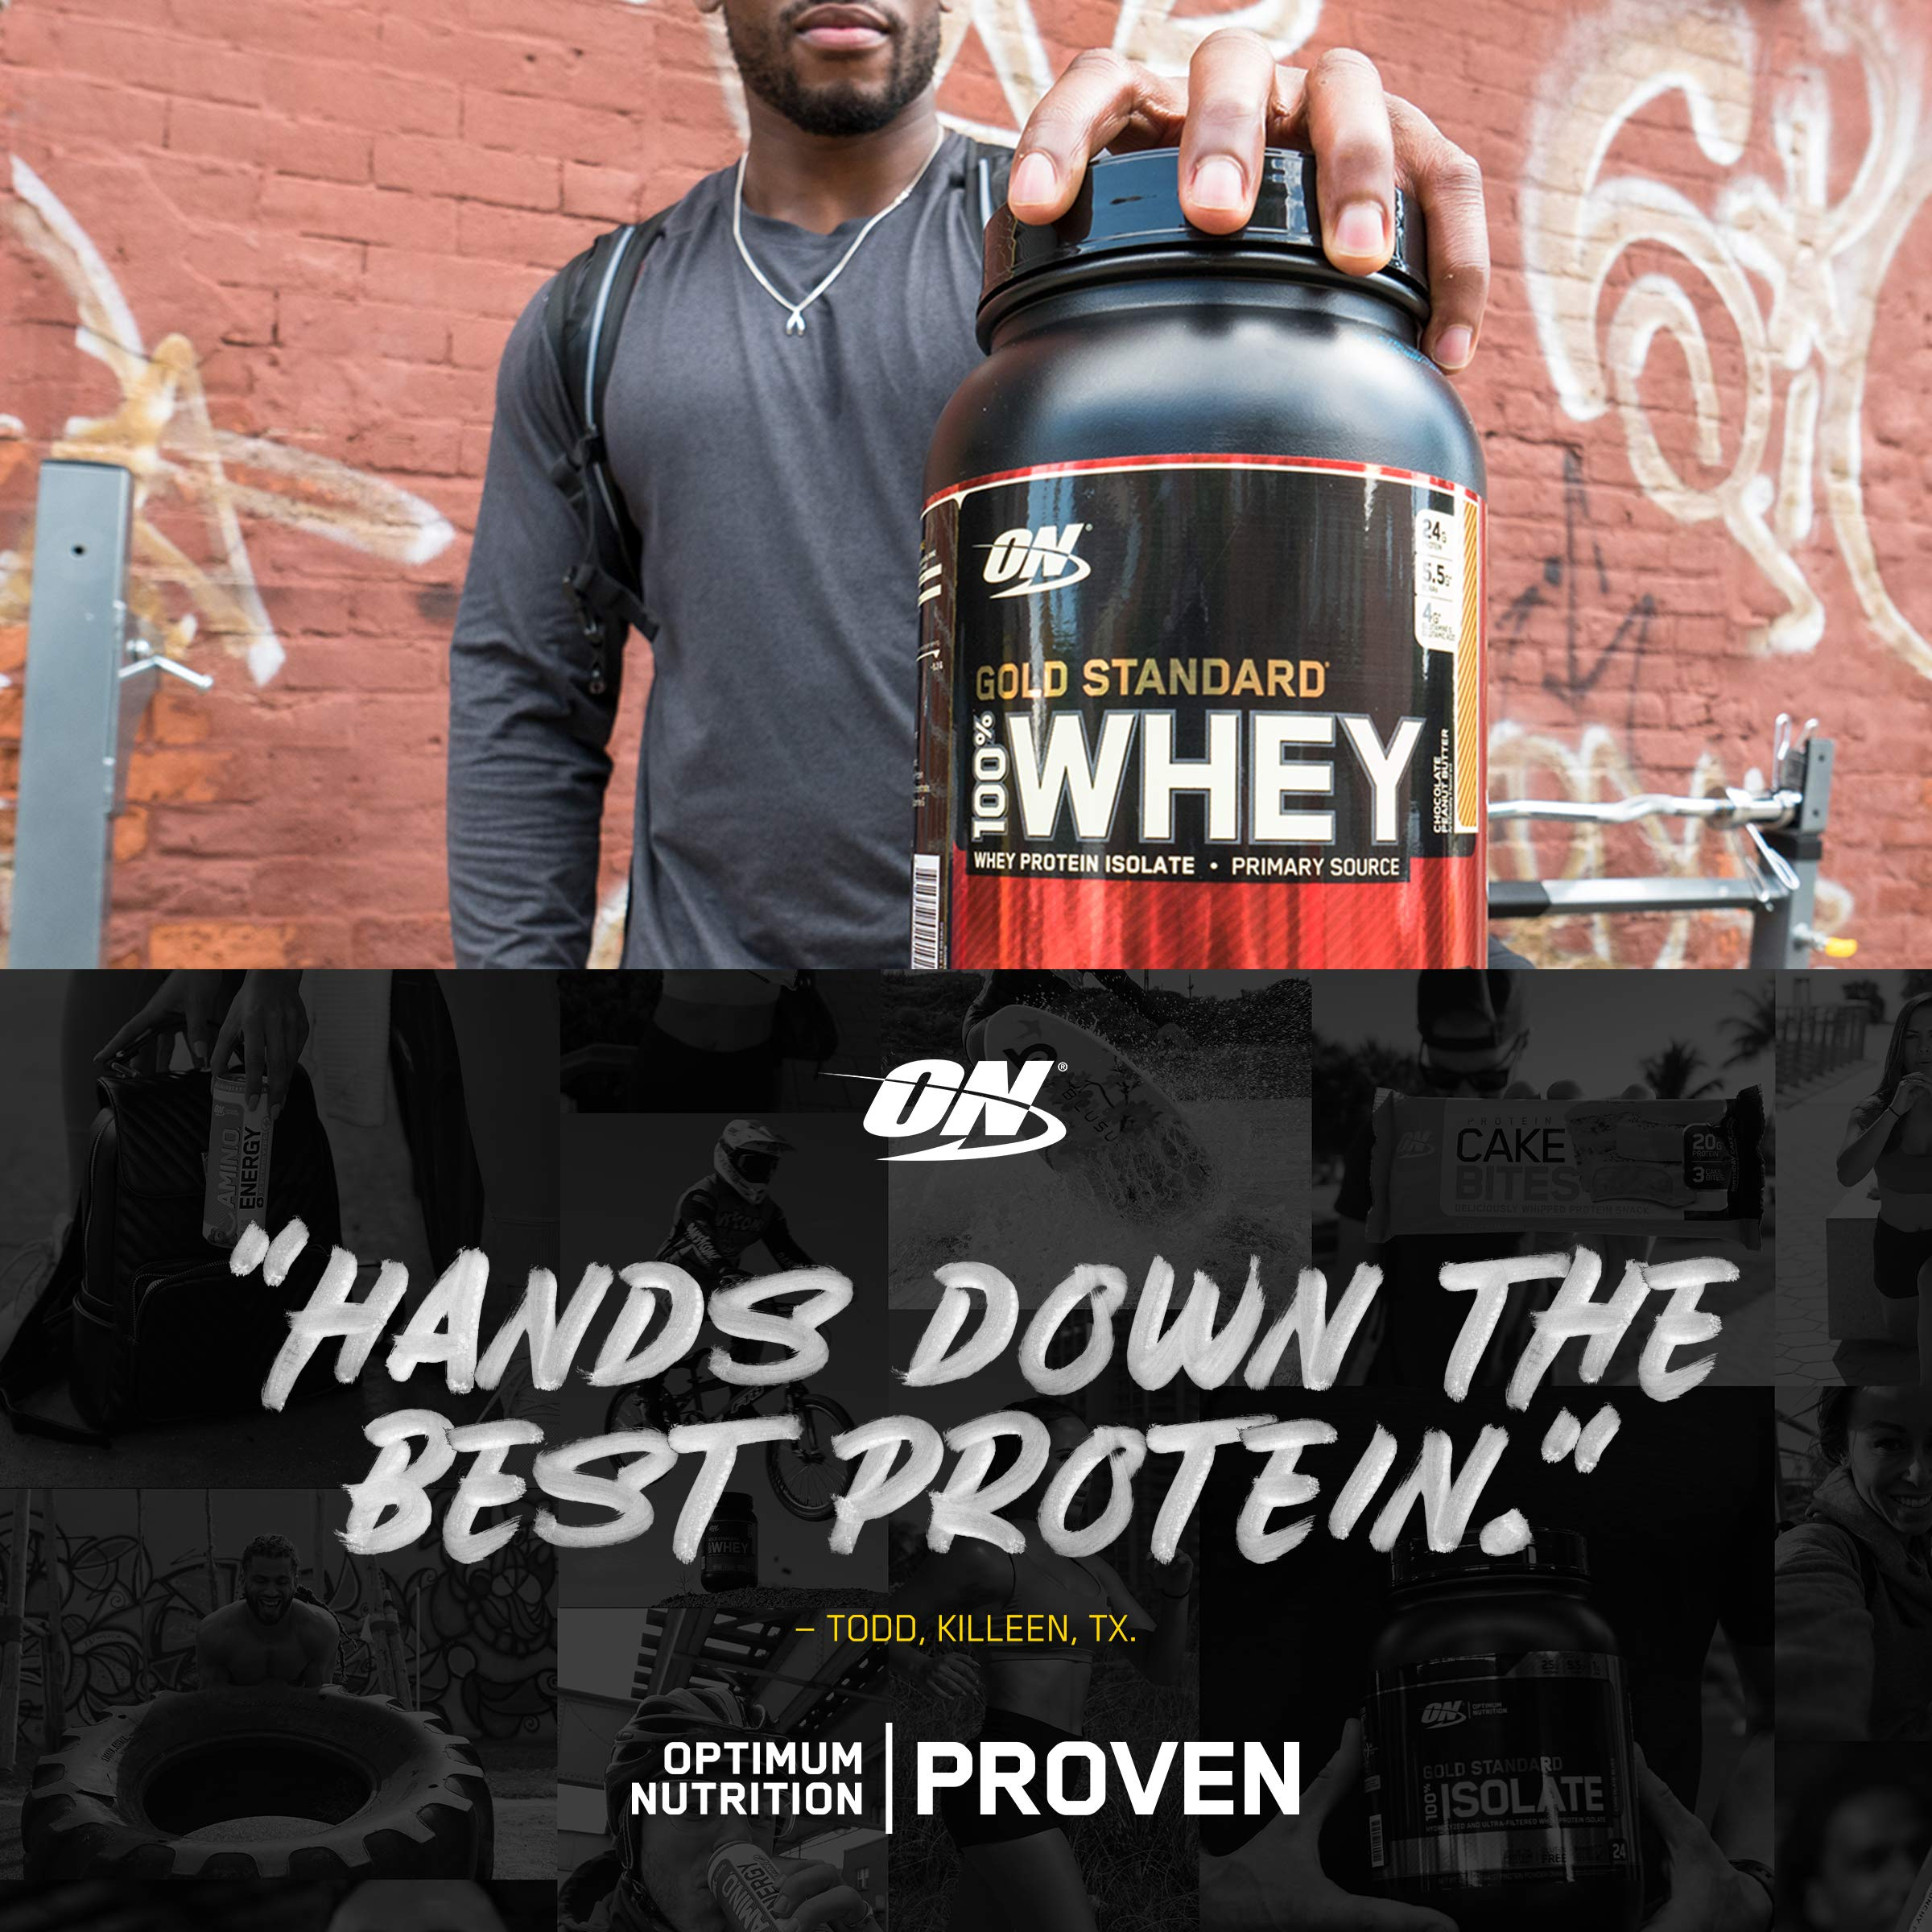 OPTIMUM NUTRITION GOLD STANDARD 100% Whey Protein Powder, Naturally Flavored, 4.8 Pound by Optimum Nutrition (Image #3)